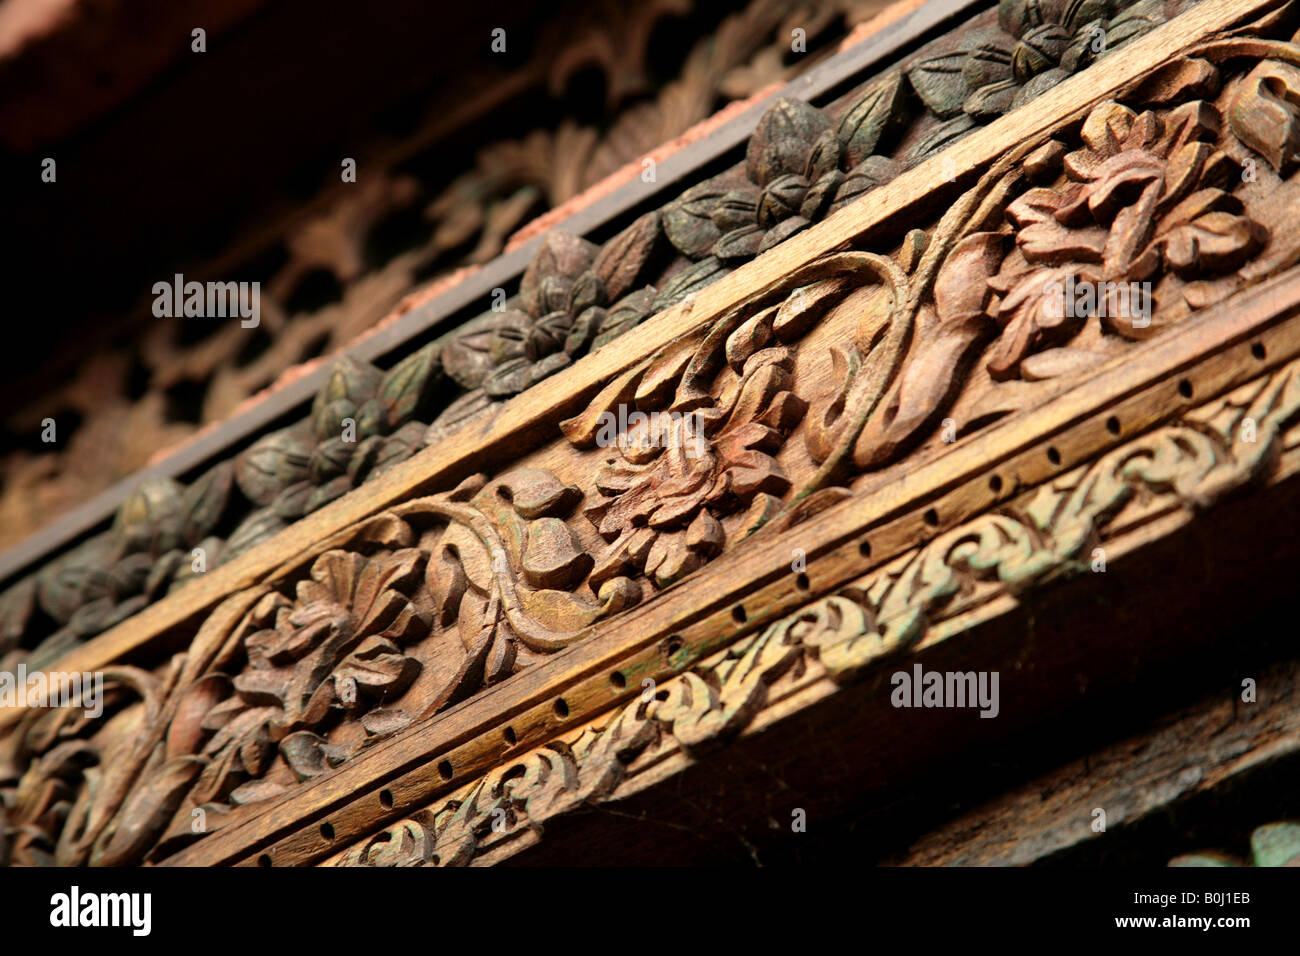 Decorative asian wood have found